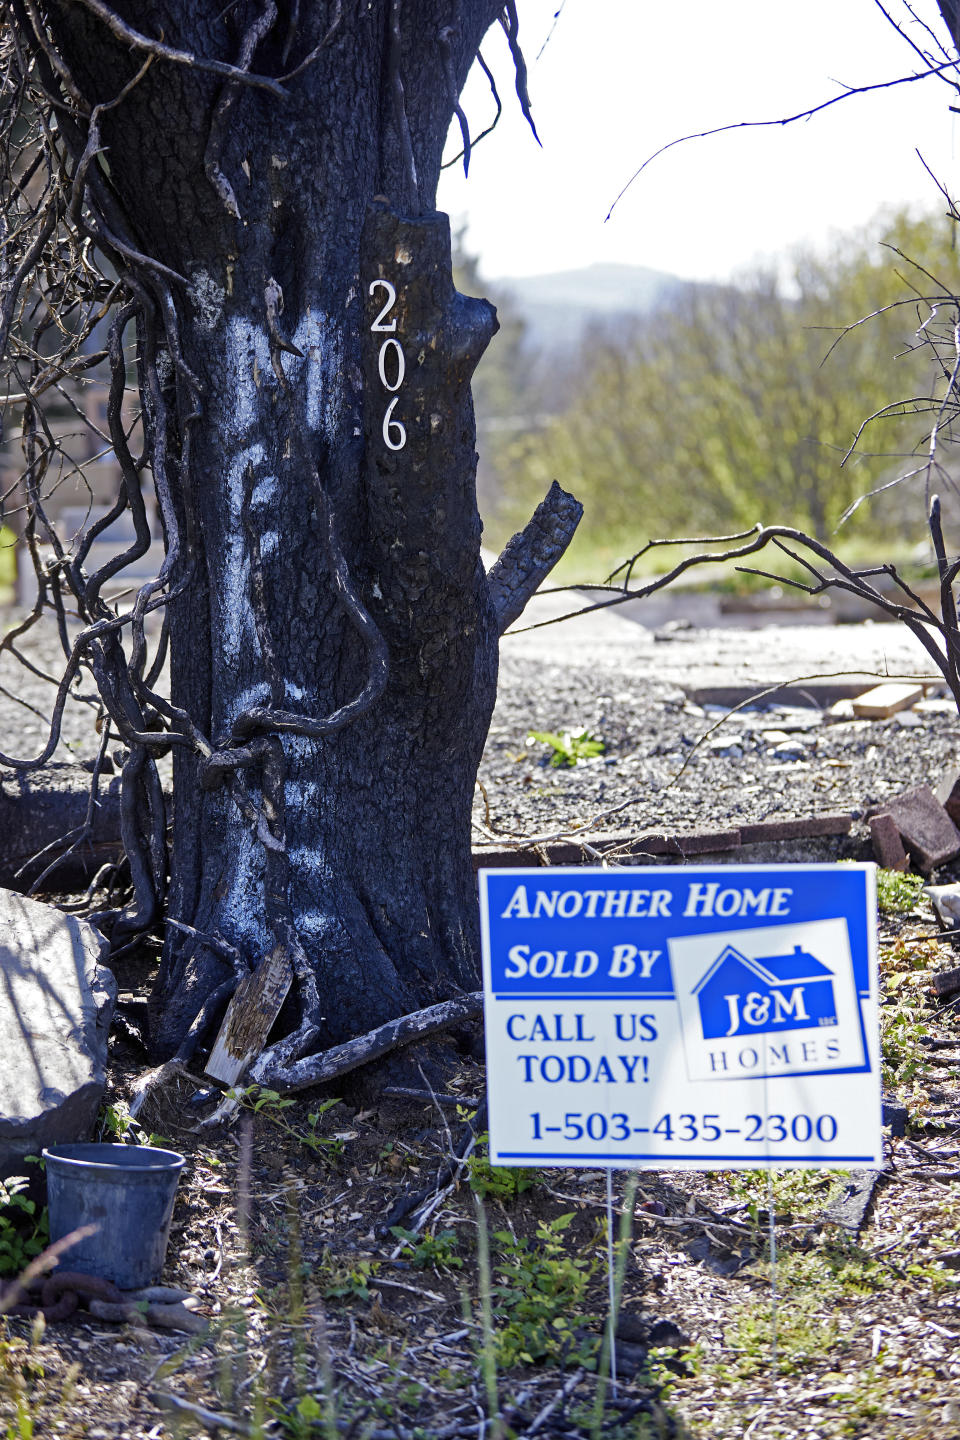 A burned tree is shown on a property in Otis, Ore., on Thursday, May. 13, 2020. The small Oregon coast town is slowly recovering from a devastating fire that destroyed 293 homes. Experts say the 2020 wildfire season in Oregon was a taste of what lies ahead as climate change makes blazes more likely and more destructive even in wetter, cooler climates like the Pacific Northwest. (AP Photo/Craig Mitchelldyer)